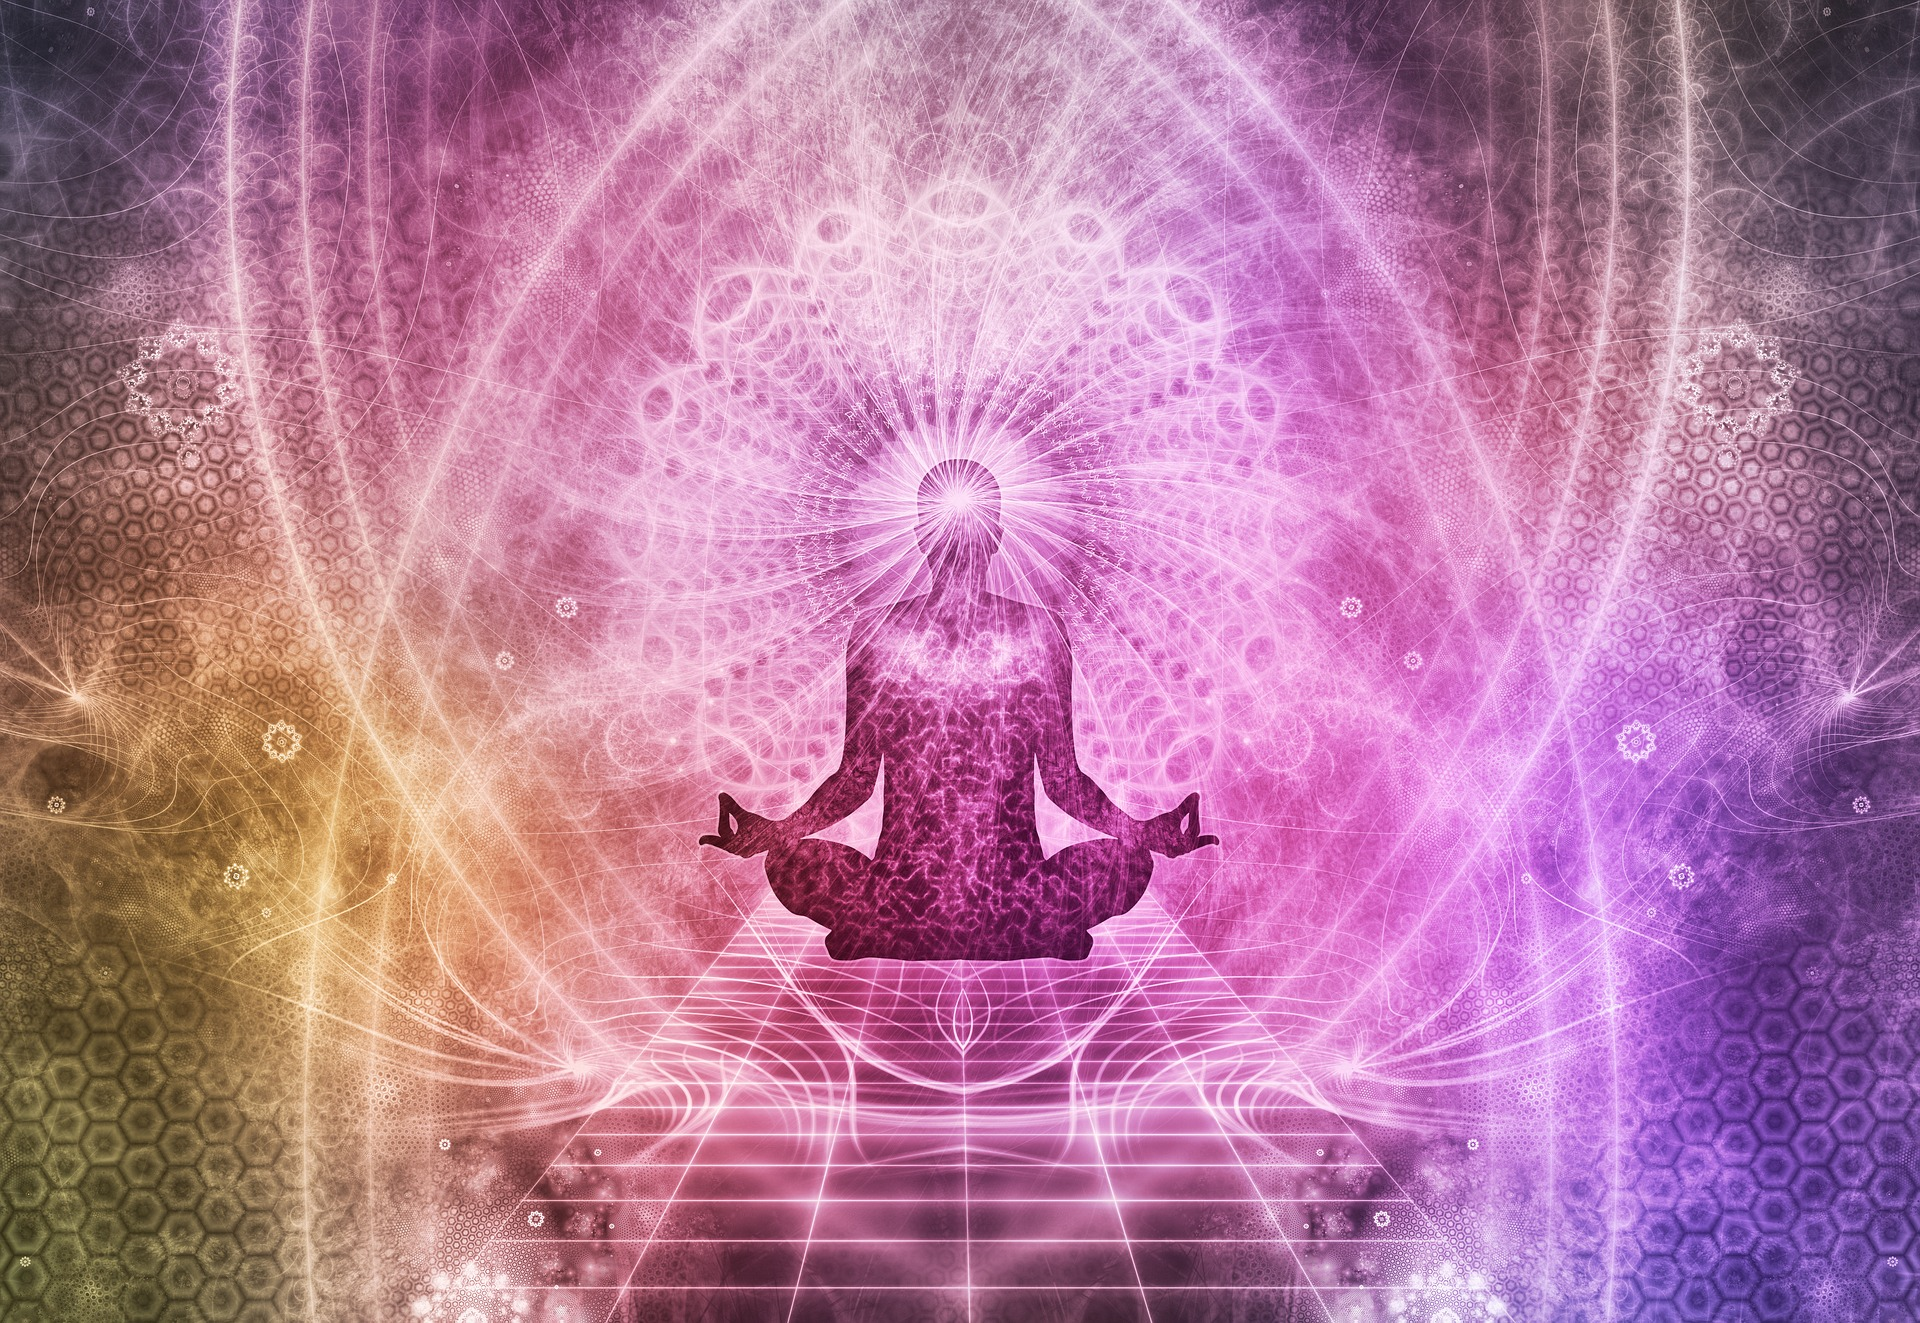 the-making-of-a-miracle-for-mary-gathering-higher-beings-and-a-request-of-the-ascended-masters.jpg